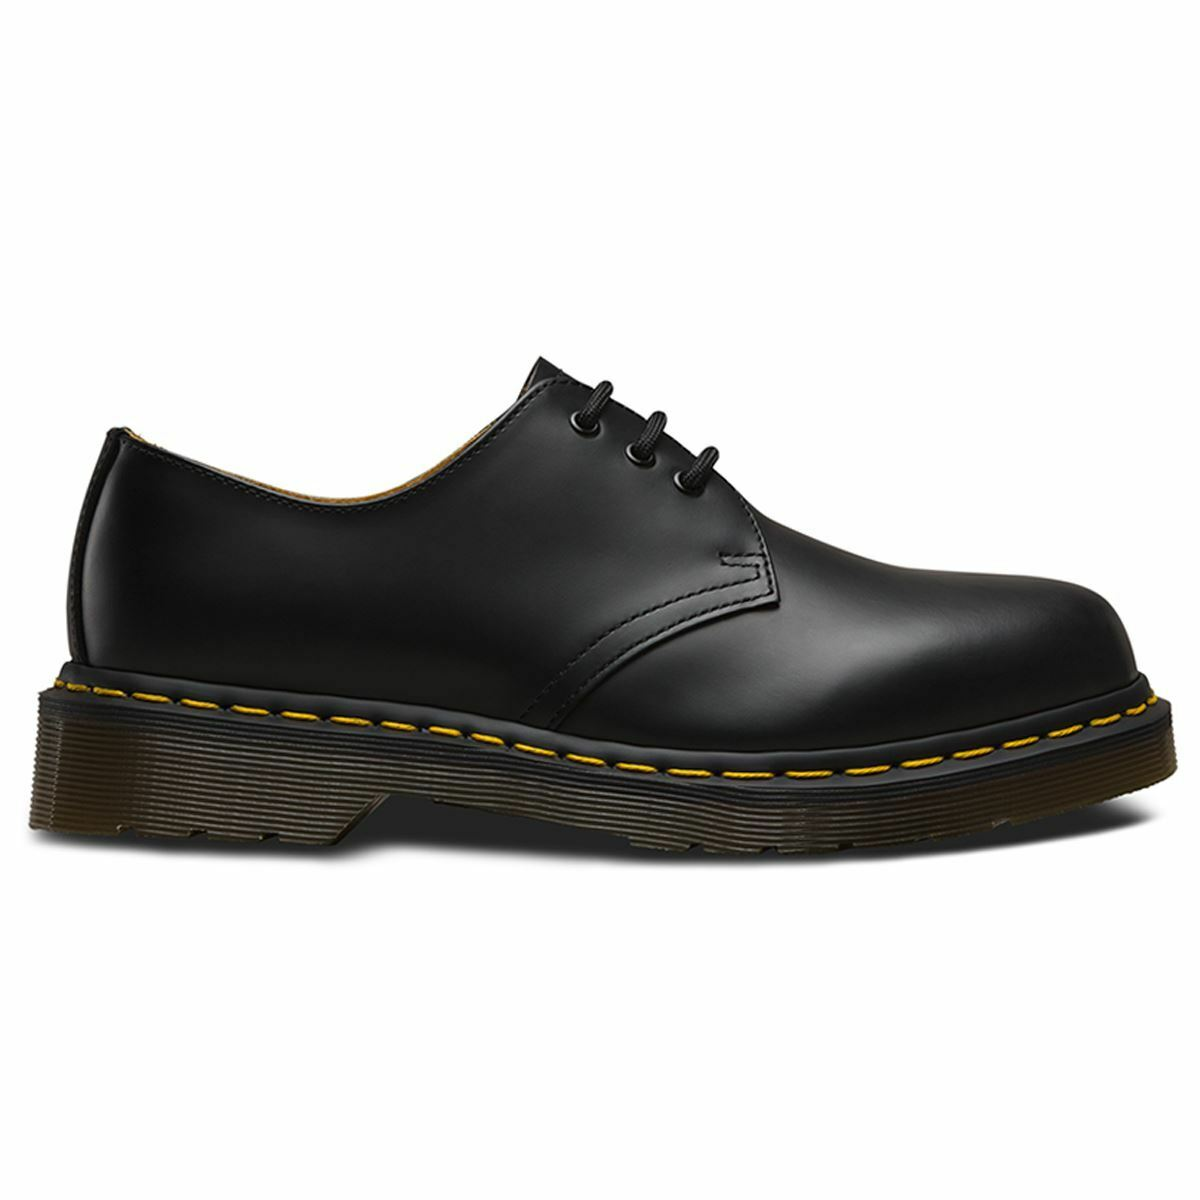 Dr.Martens 1461 3 Eyelet Smooth schwarz Mens Schuhes